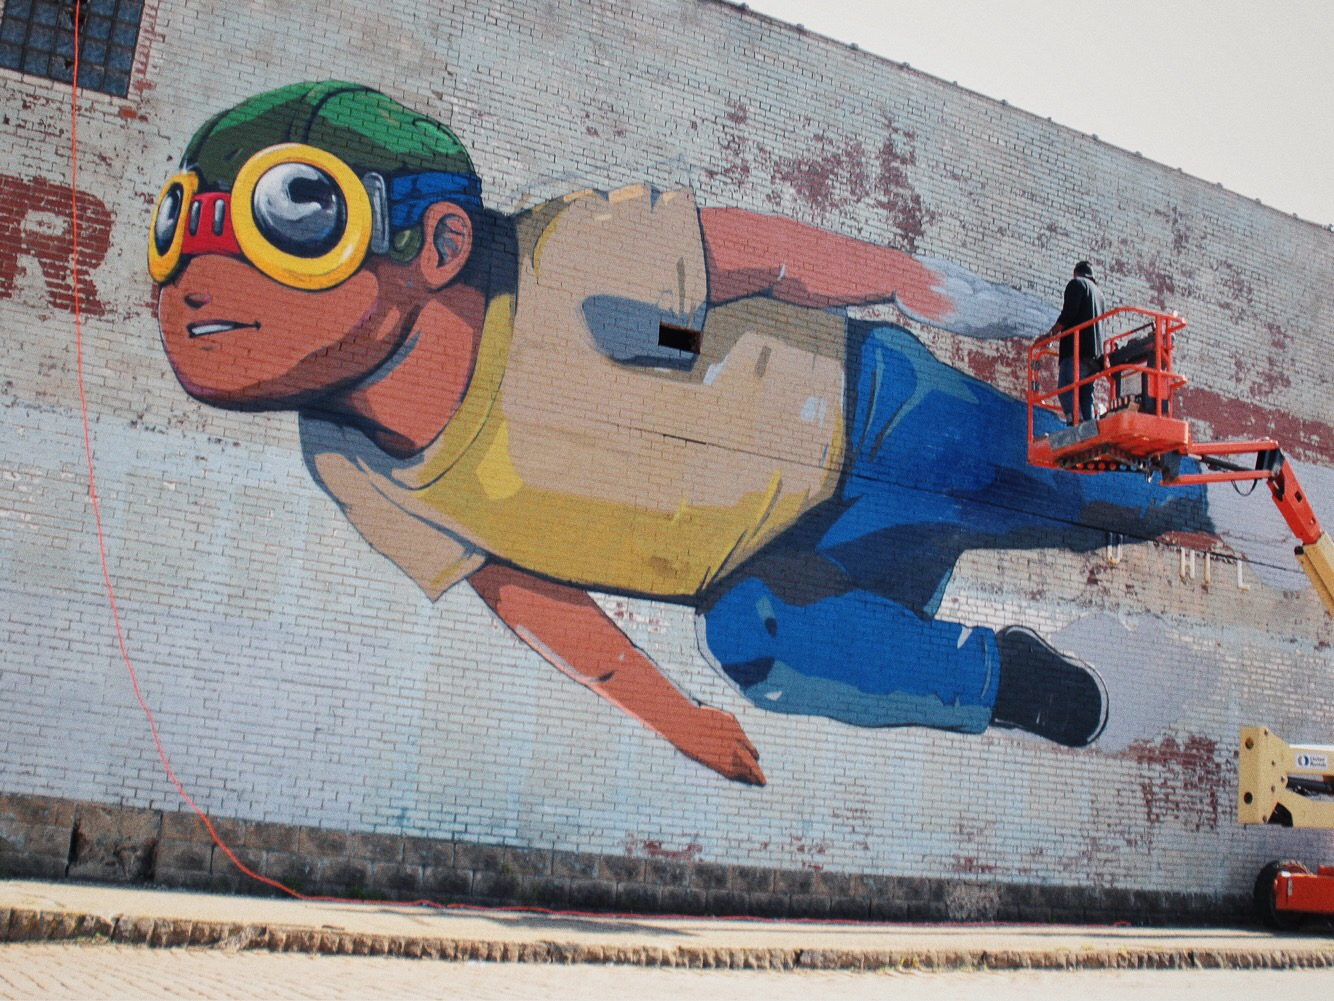 Hebru Brantley painting his Flyboy mural - photograph by Alex Young